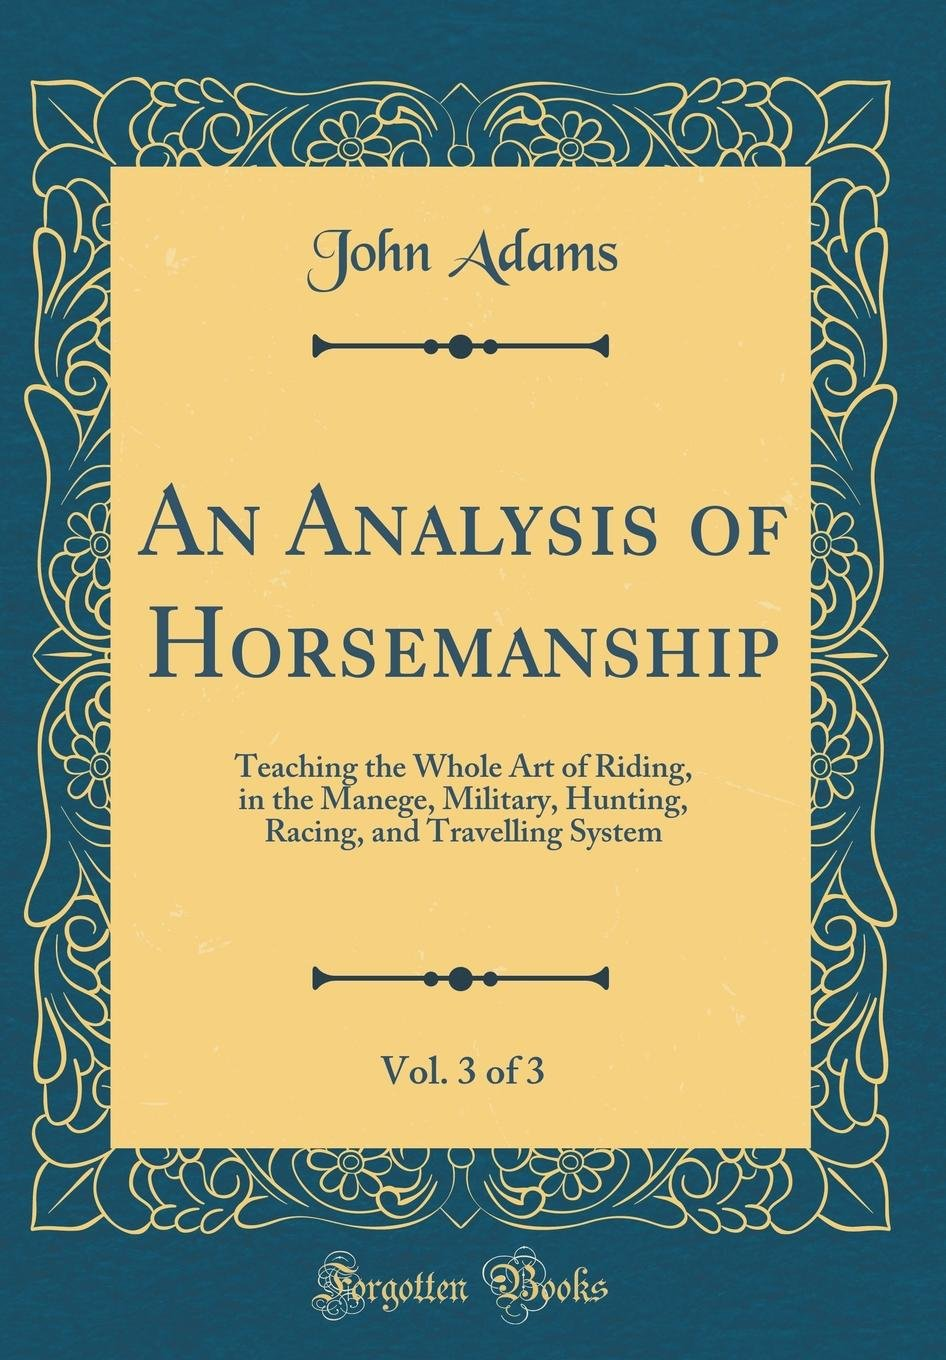 Download An Analysis of Horsemanship, Vol. 3 of 3: Teaching the Whole Art of Riding, in the Manege, Military, Hunting, Racing, and Travelling System (Classic Reprint) ebook